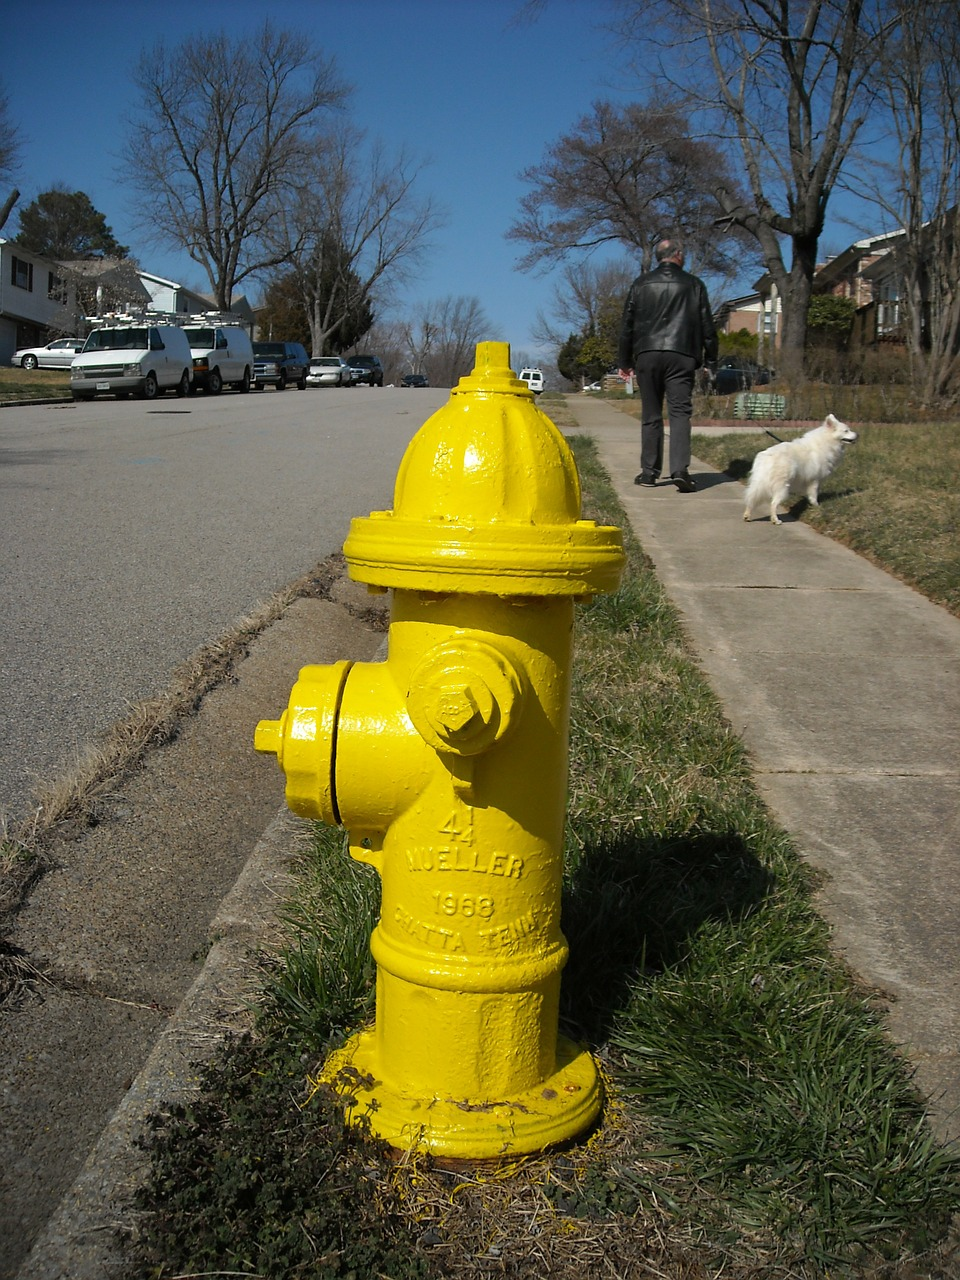 hydrant street dog free photo